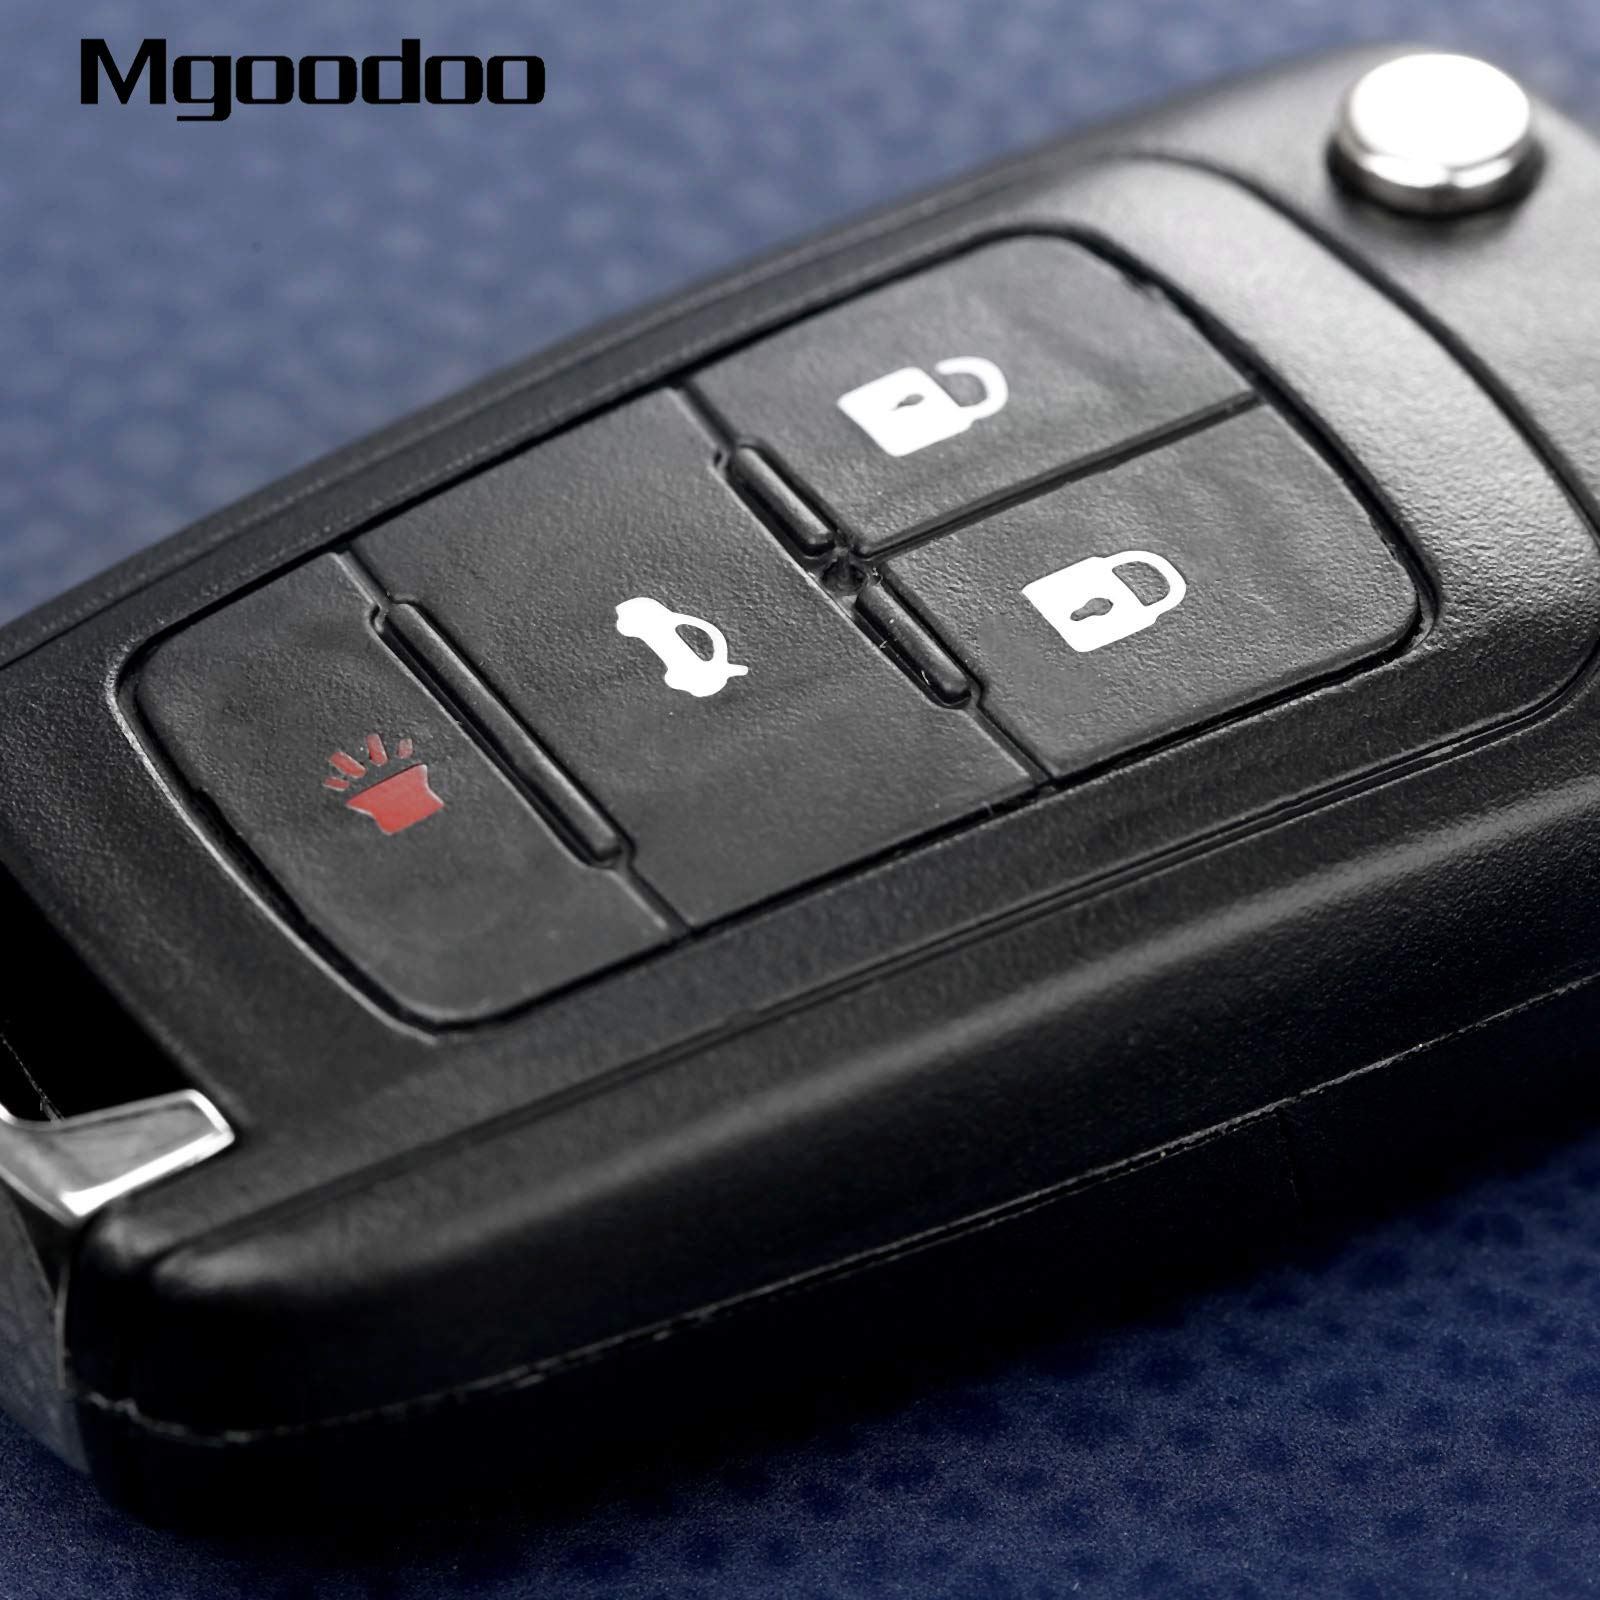 Daphot-Store - 4 Button Flip Folding Remote Key Case Shell Replacement Entry Fob For Buick LaCrosse Regal Verano GMC Terrain Car Covers by Daphot★Store (Image #4)